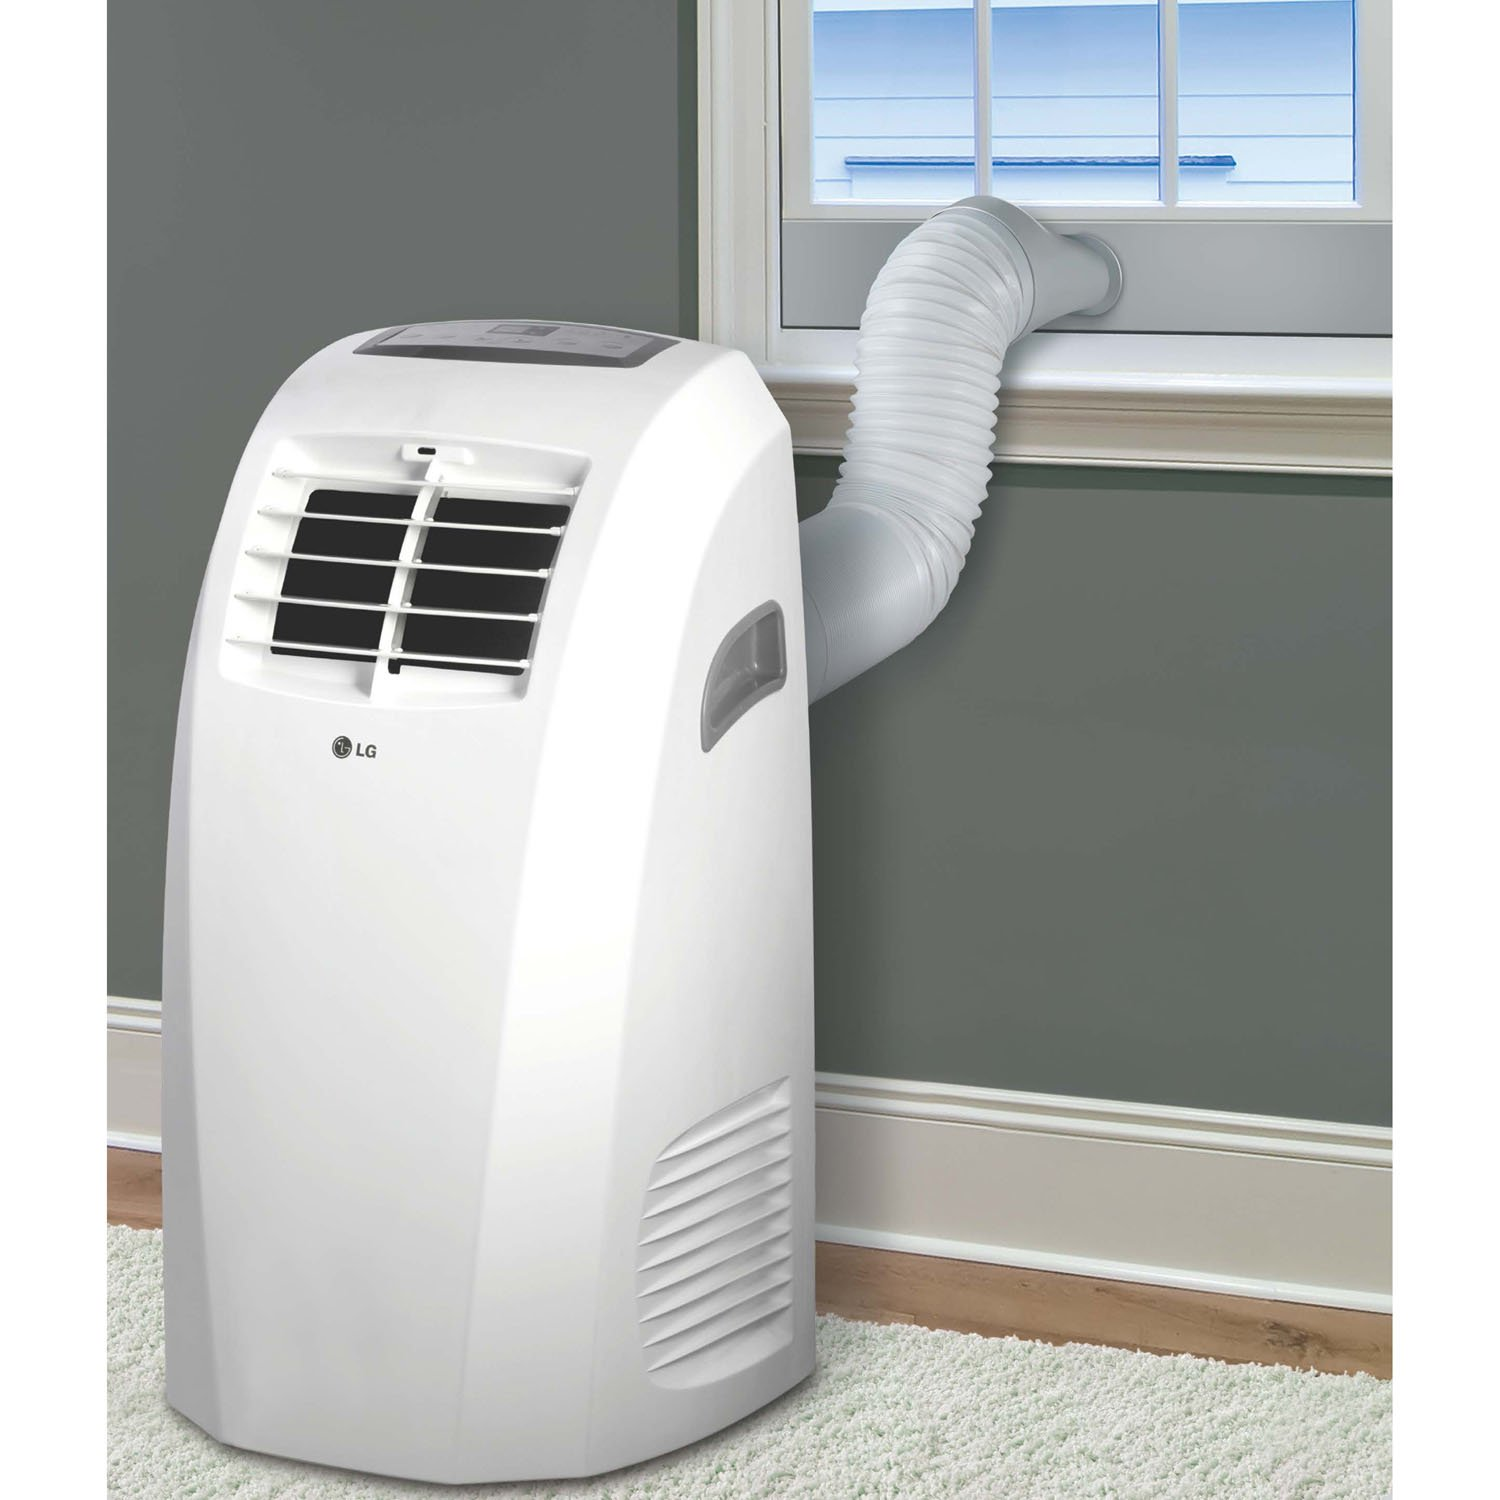 Delightful Amazon.com: LG LP1015WNR 115V Portable Air Conditioner With Remote Control  In White For Rooms Up To 250 Sq. Ft.: Home U0026 Kitchen